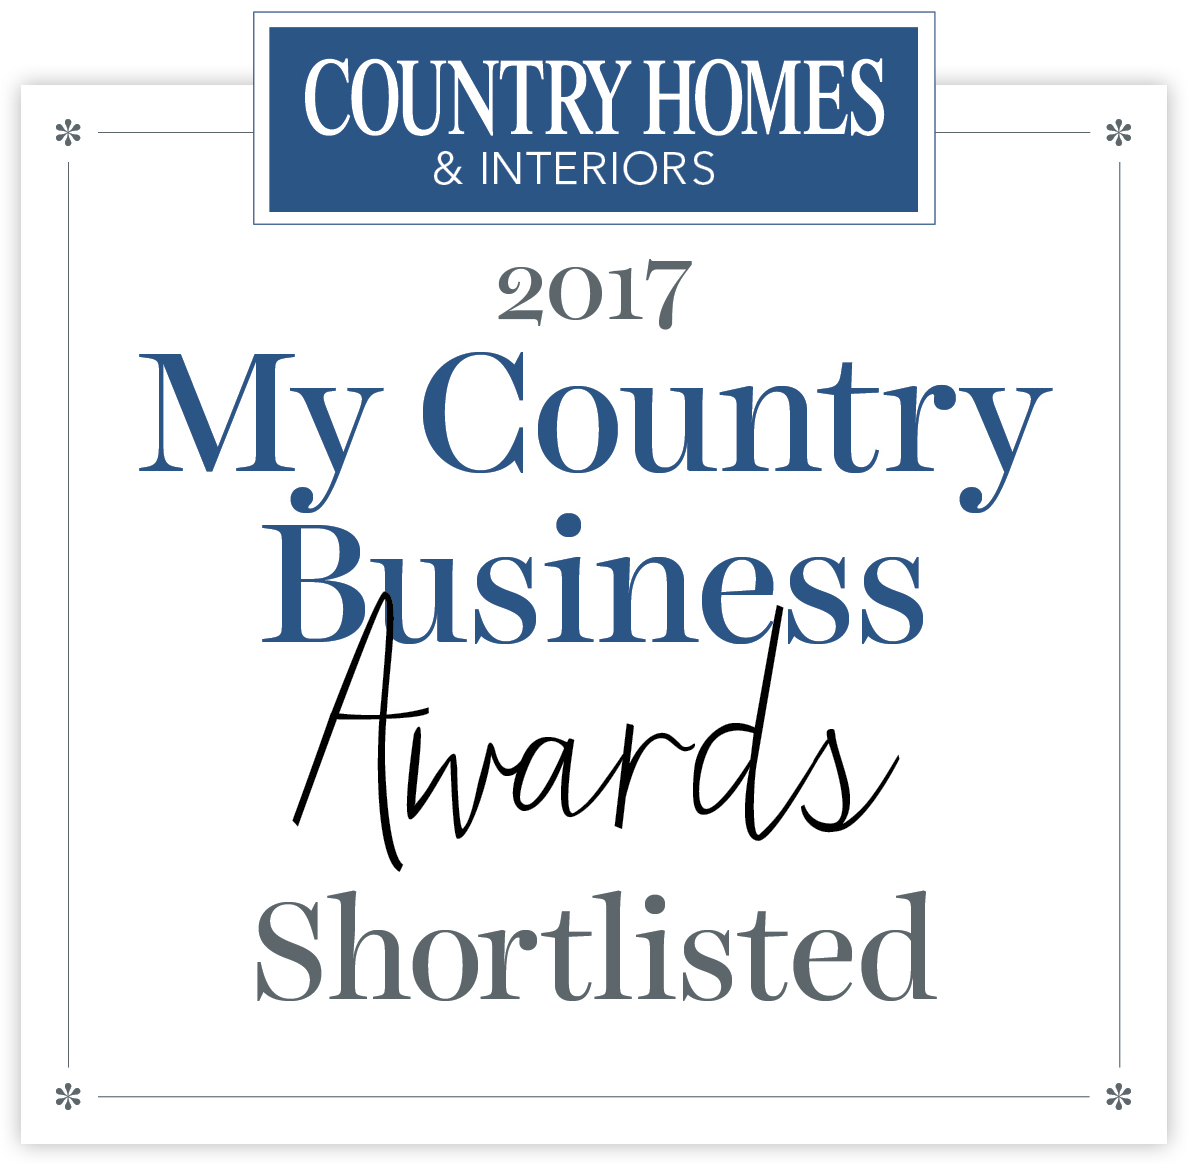 We are delighted to announce that once again we have been shortlisted for the Country Homes & Interiors My Country Business Awards 2017, under the home accessory crafters and makers category. This is the third year we have been lucky enough to be shortlisted, so we are hoping that this year is our year!  Winners will be announced on the 3rd July. Keep your fingers crossed for us!